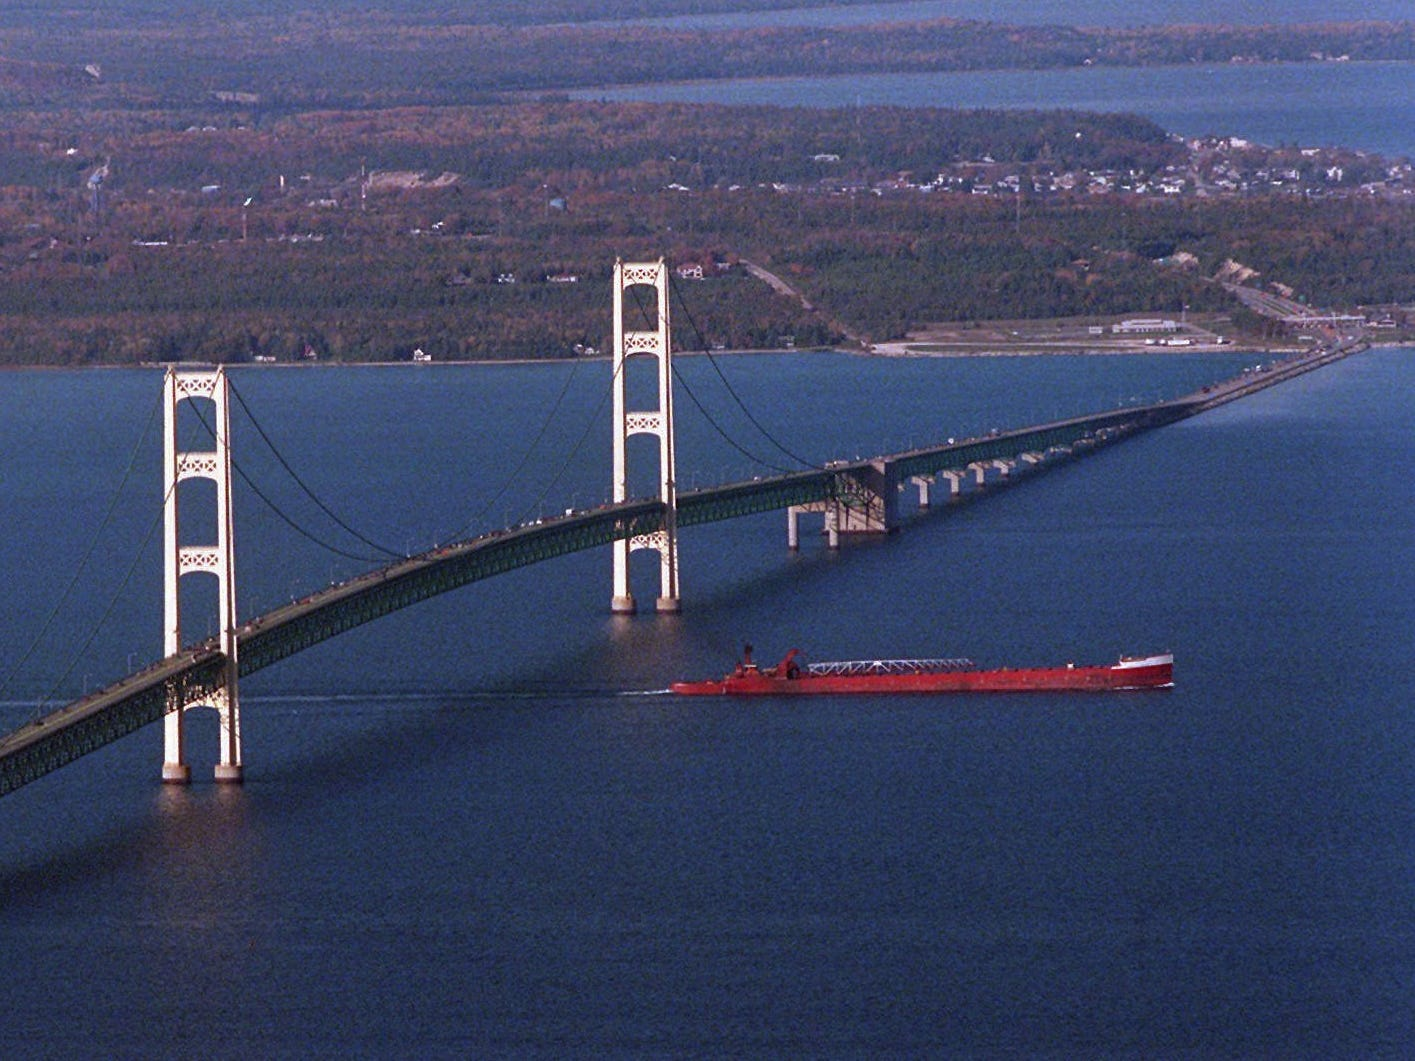 A barge makes its way past the Mackinac Bridge, in this Oct. 1997 file photo. The bridge which  is a  5-mile steel and concrete structure that opened 40 years ago this Saturday, Nov 1, 1997, is a testament to the hard work of thousands of  workers. It is the only bridge connecting the Upper Peninsula to the rest of Michigan.